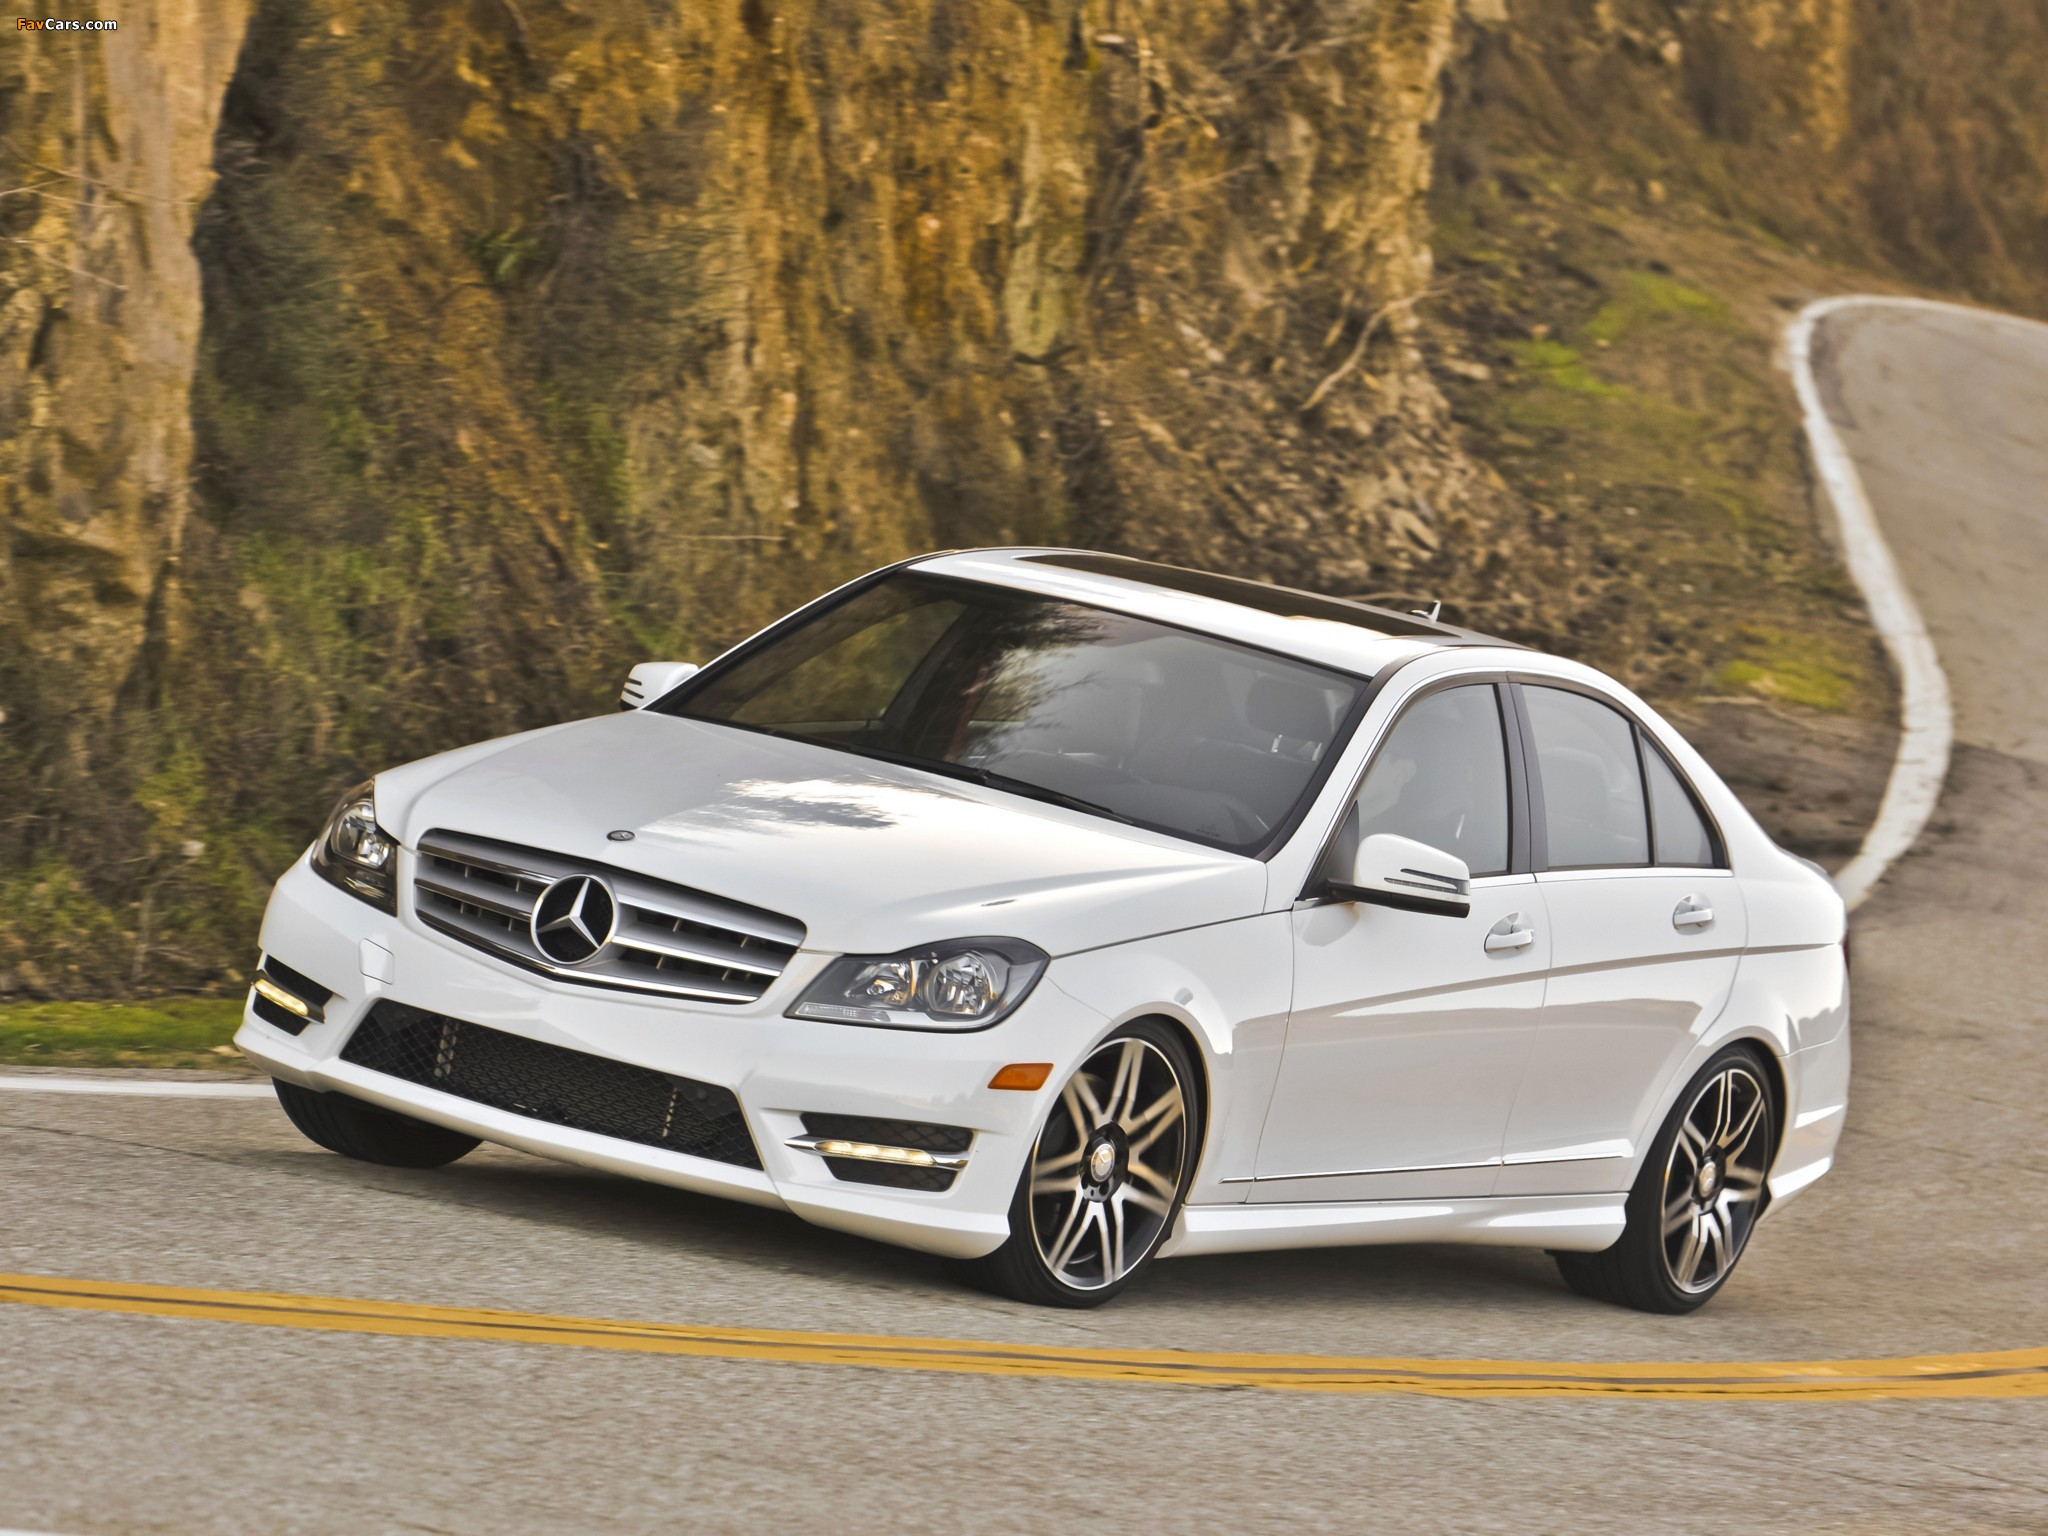 Mercedes-Benz C 300 4MATIC AMG Sports Package US-spec (W204) 2011 images (2048 x 1536)